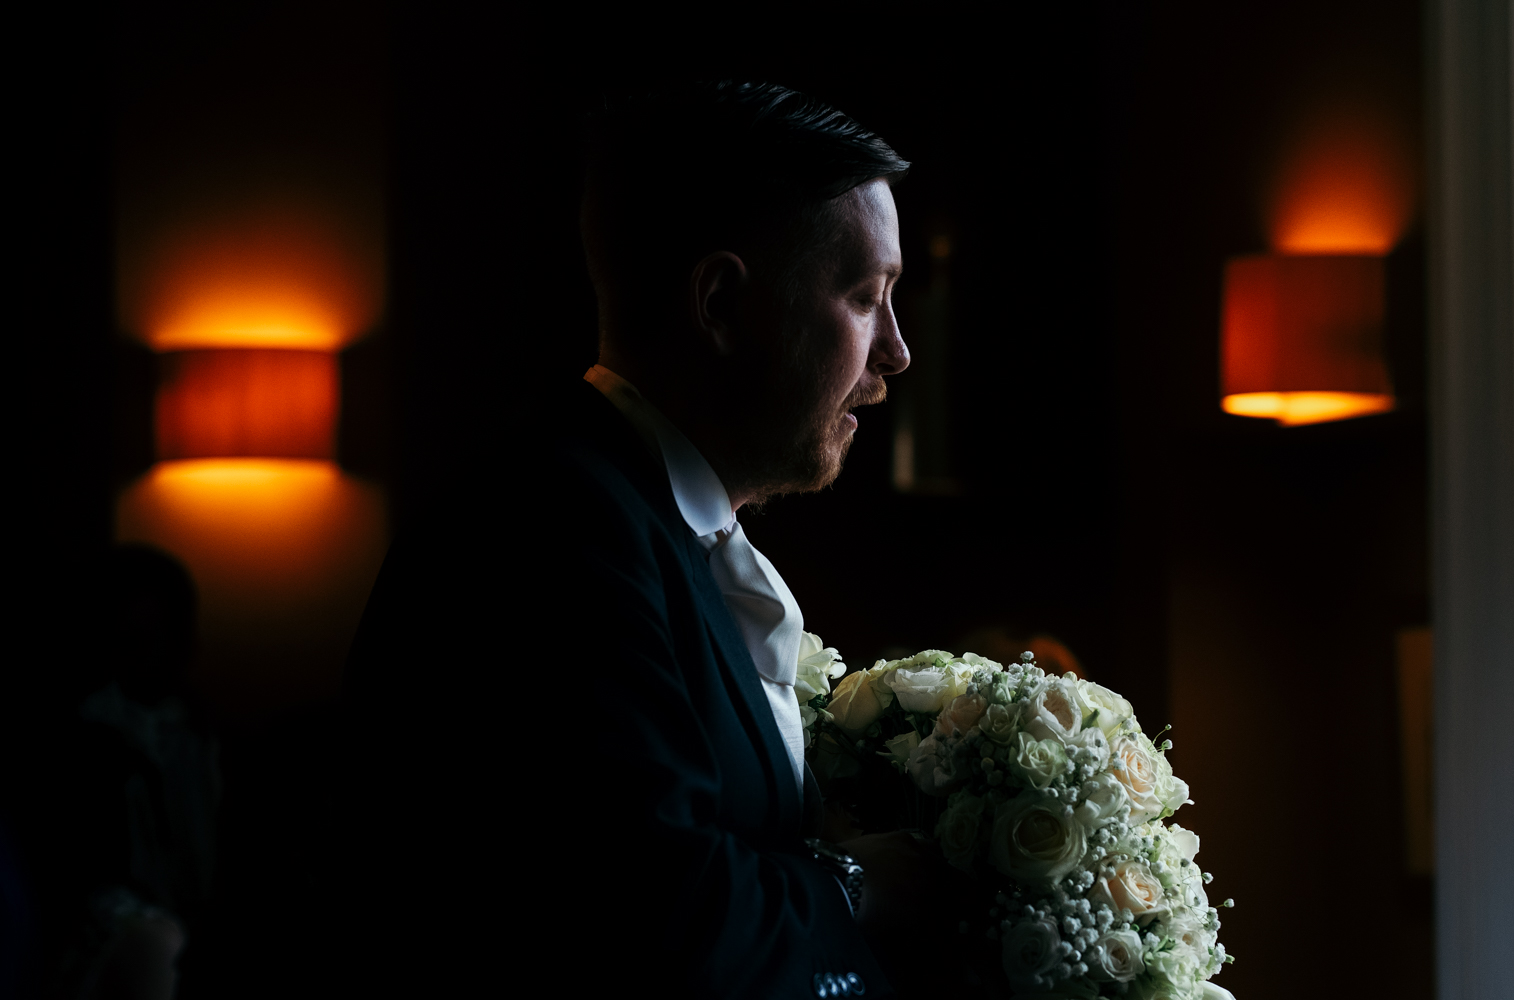 A dark and moody photo of the groom inside the wedding venue holding the flowers